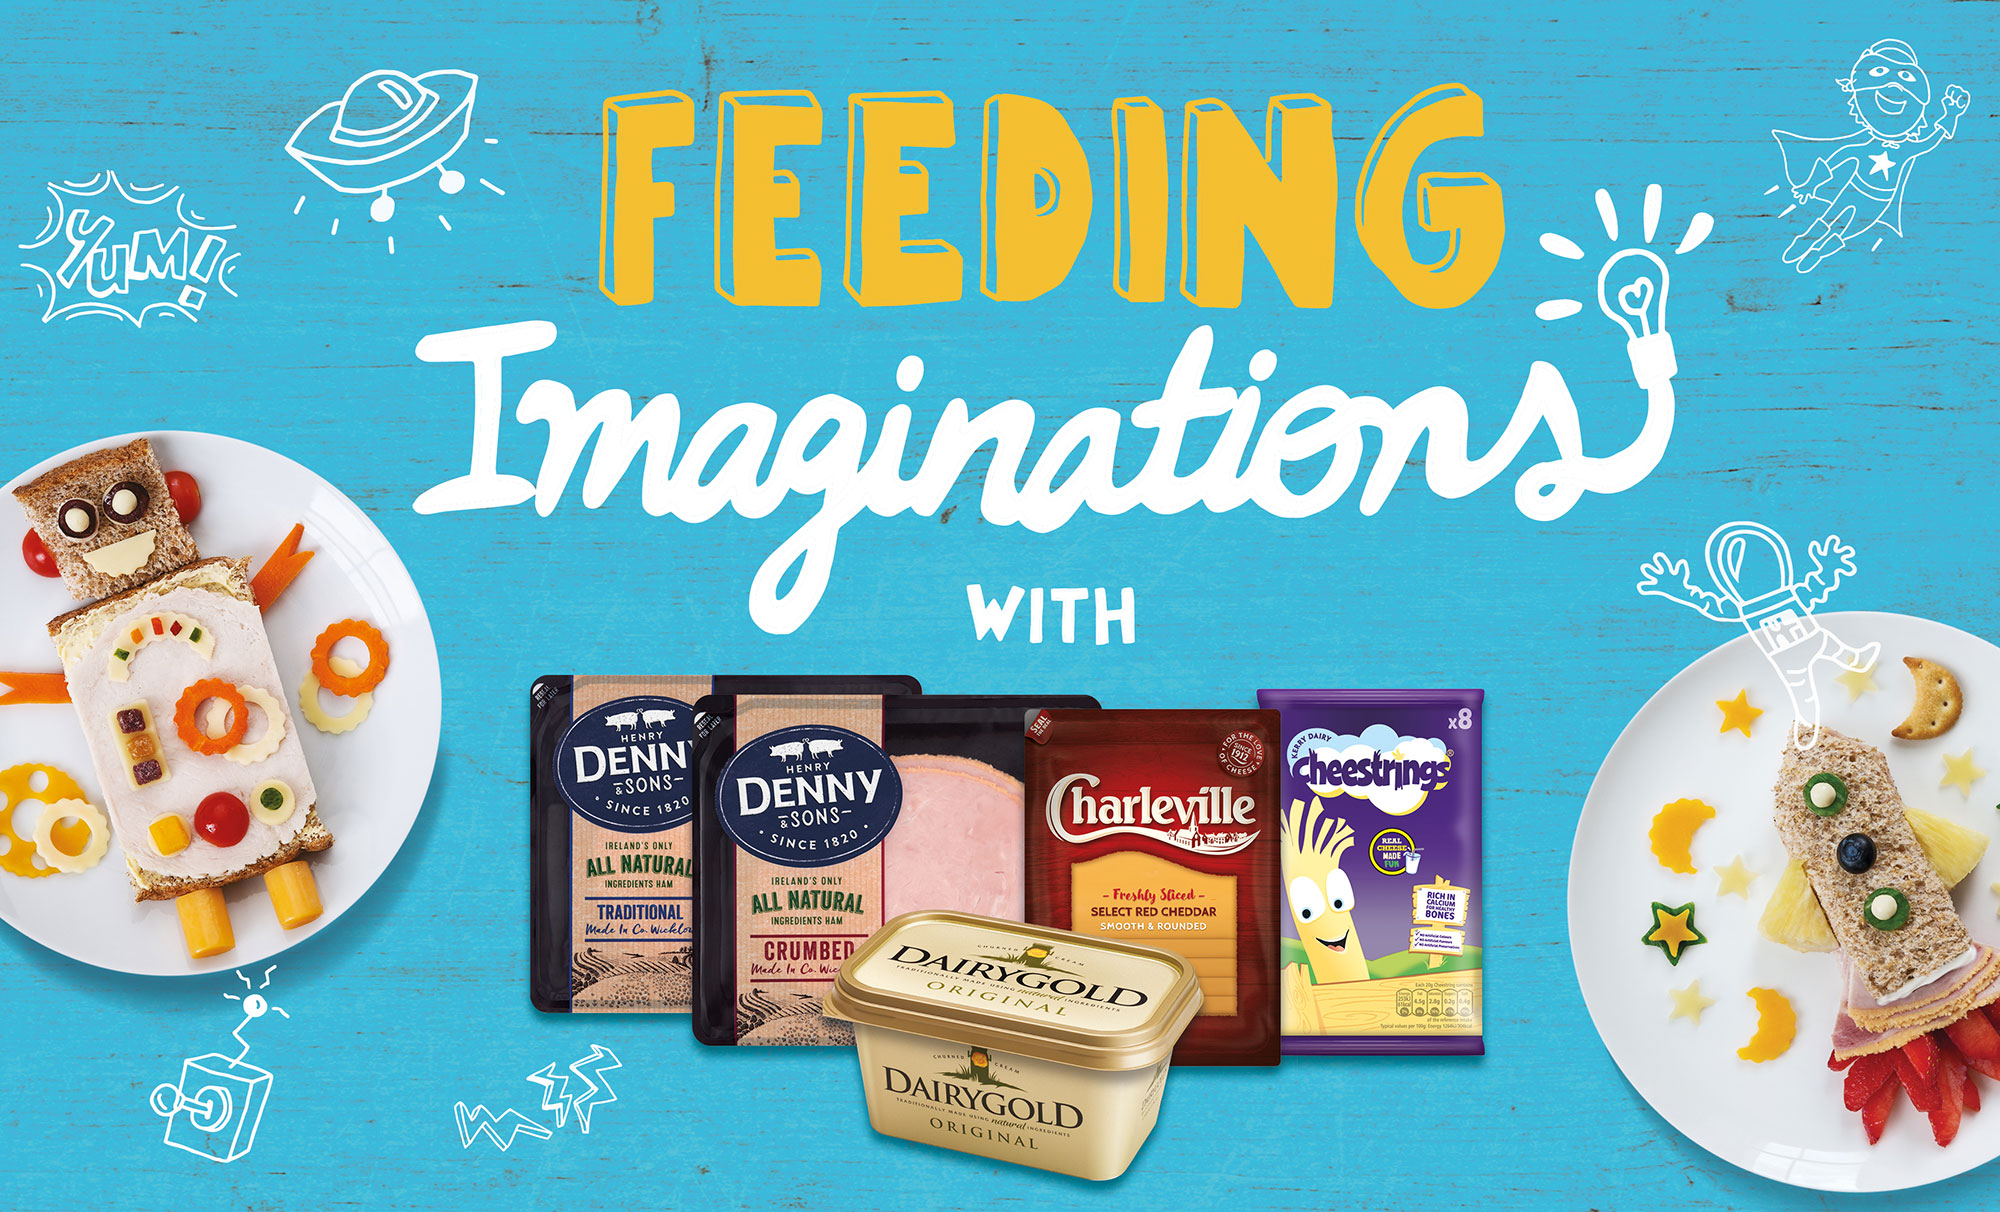 Kerry Foods Feeding Imaginations